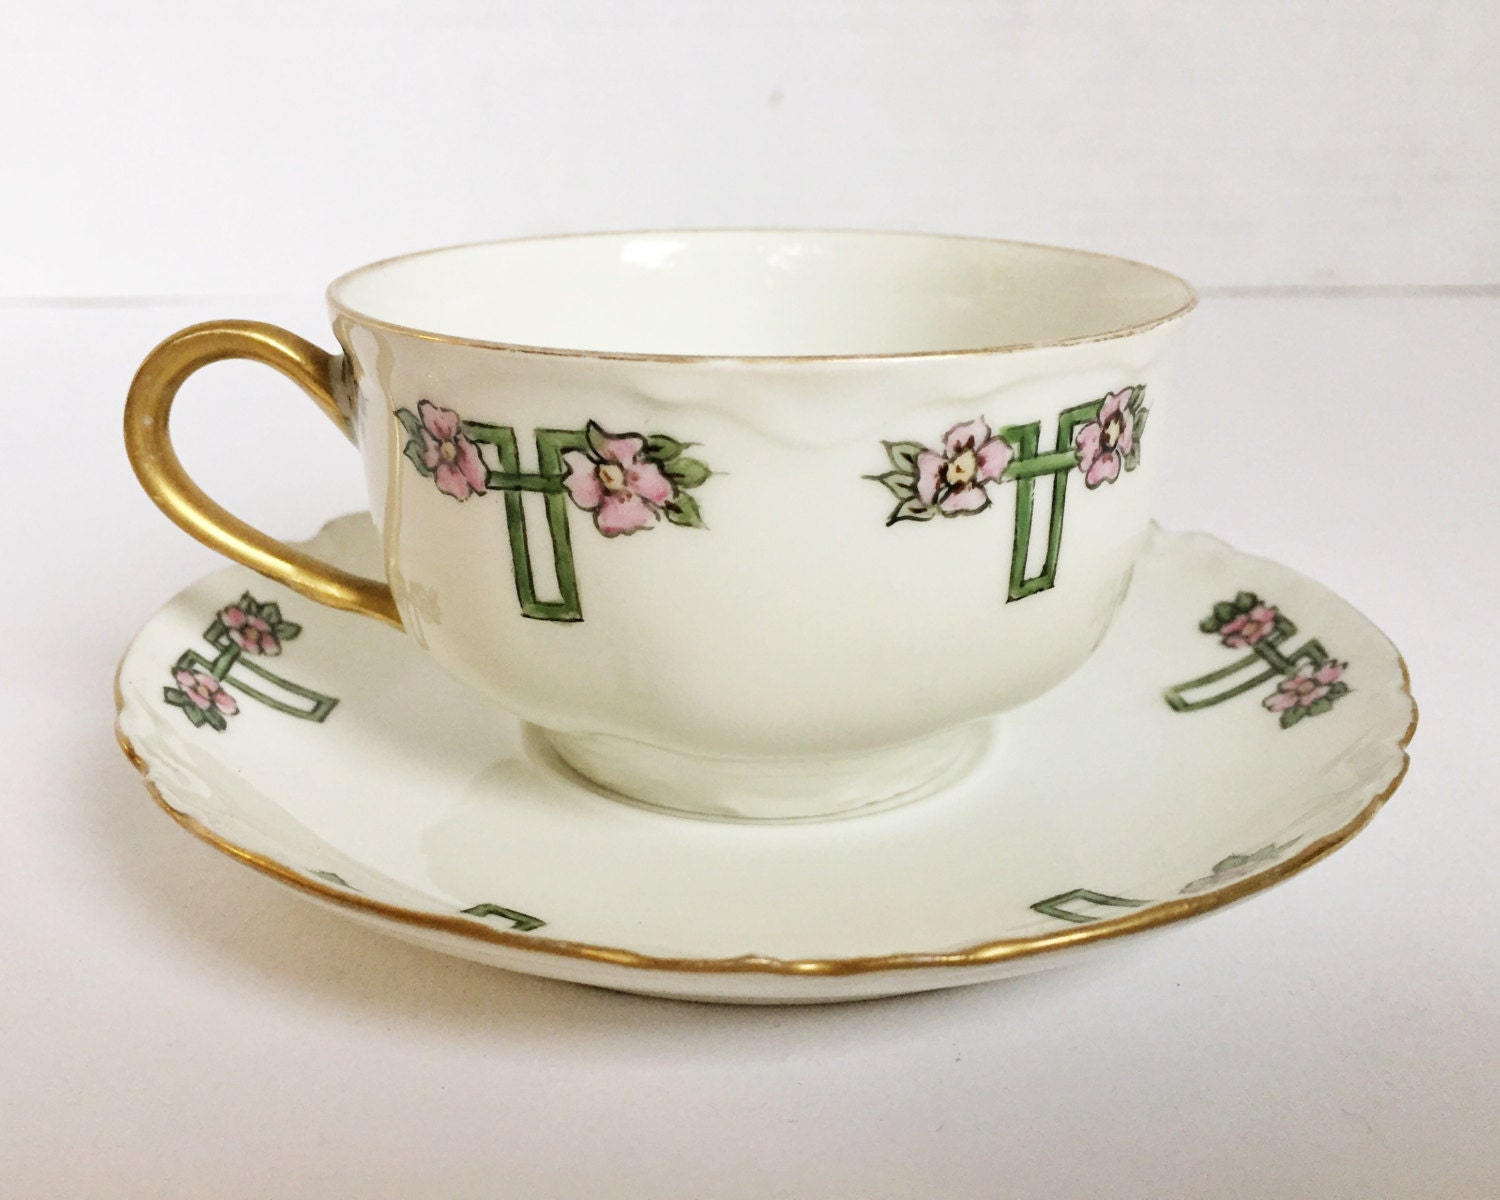 Charming Haviland Limoges Teacup And Saucer Hand Painted Haviland